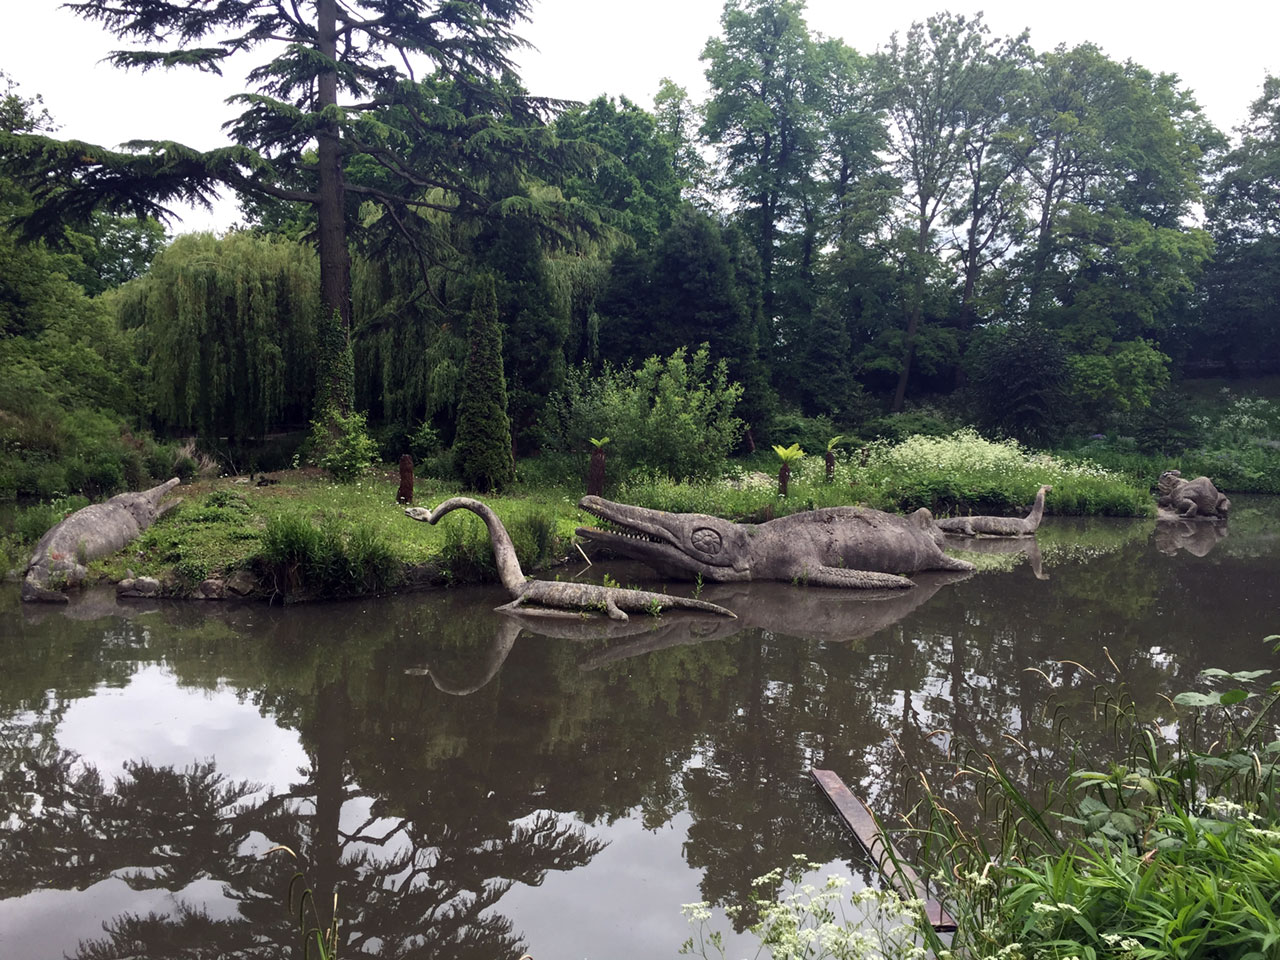 Prehistoric creatures in Crystal Palace Park